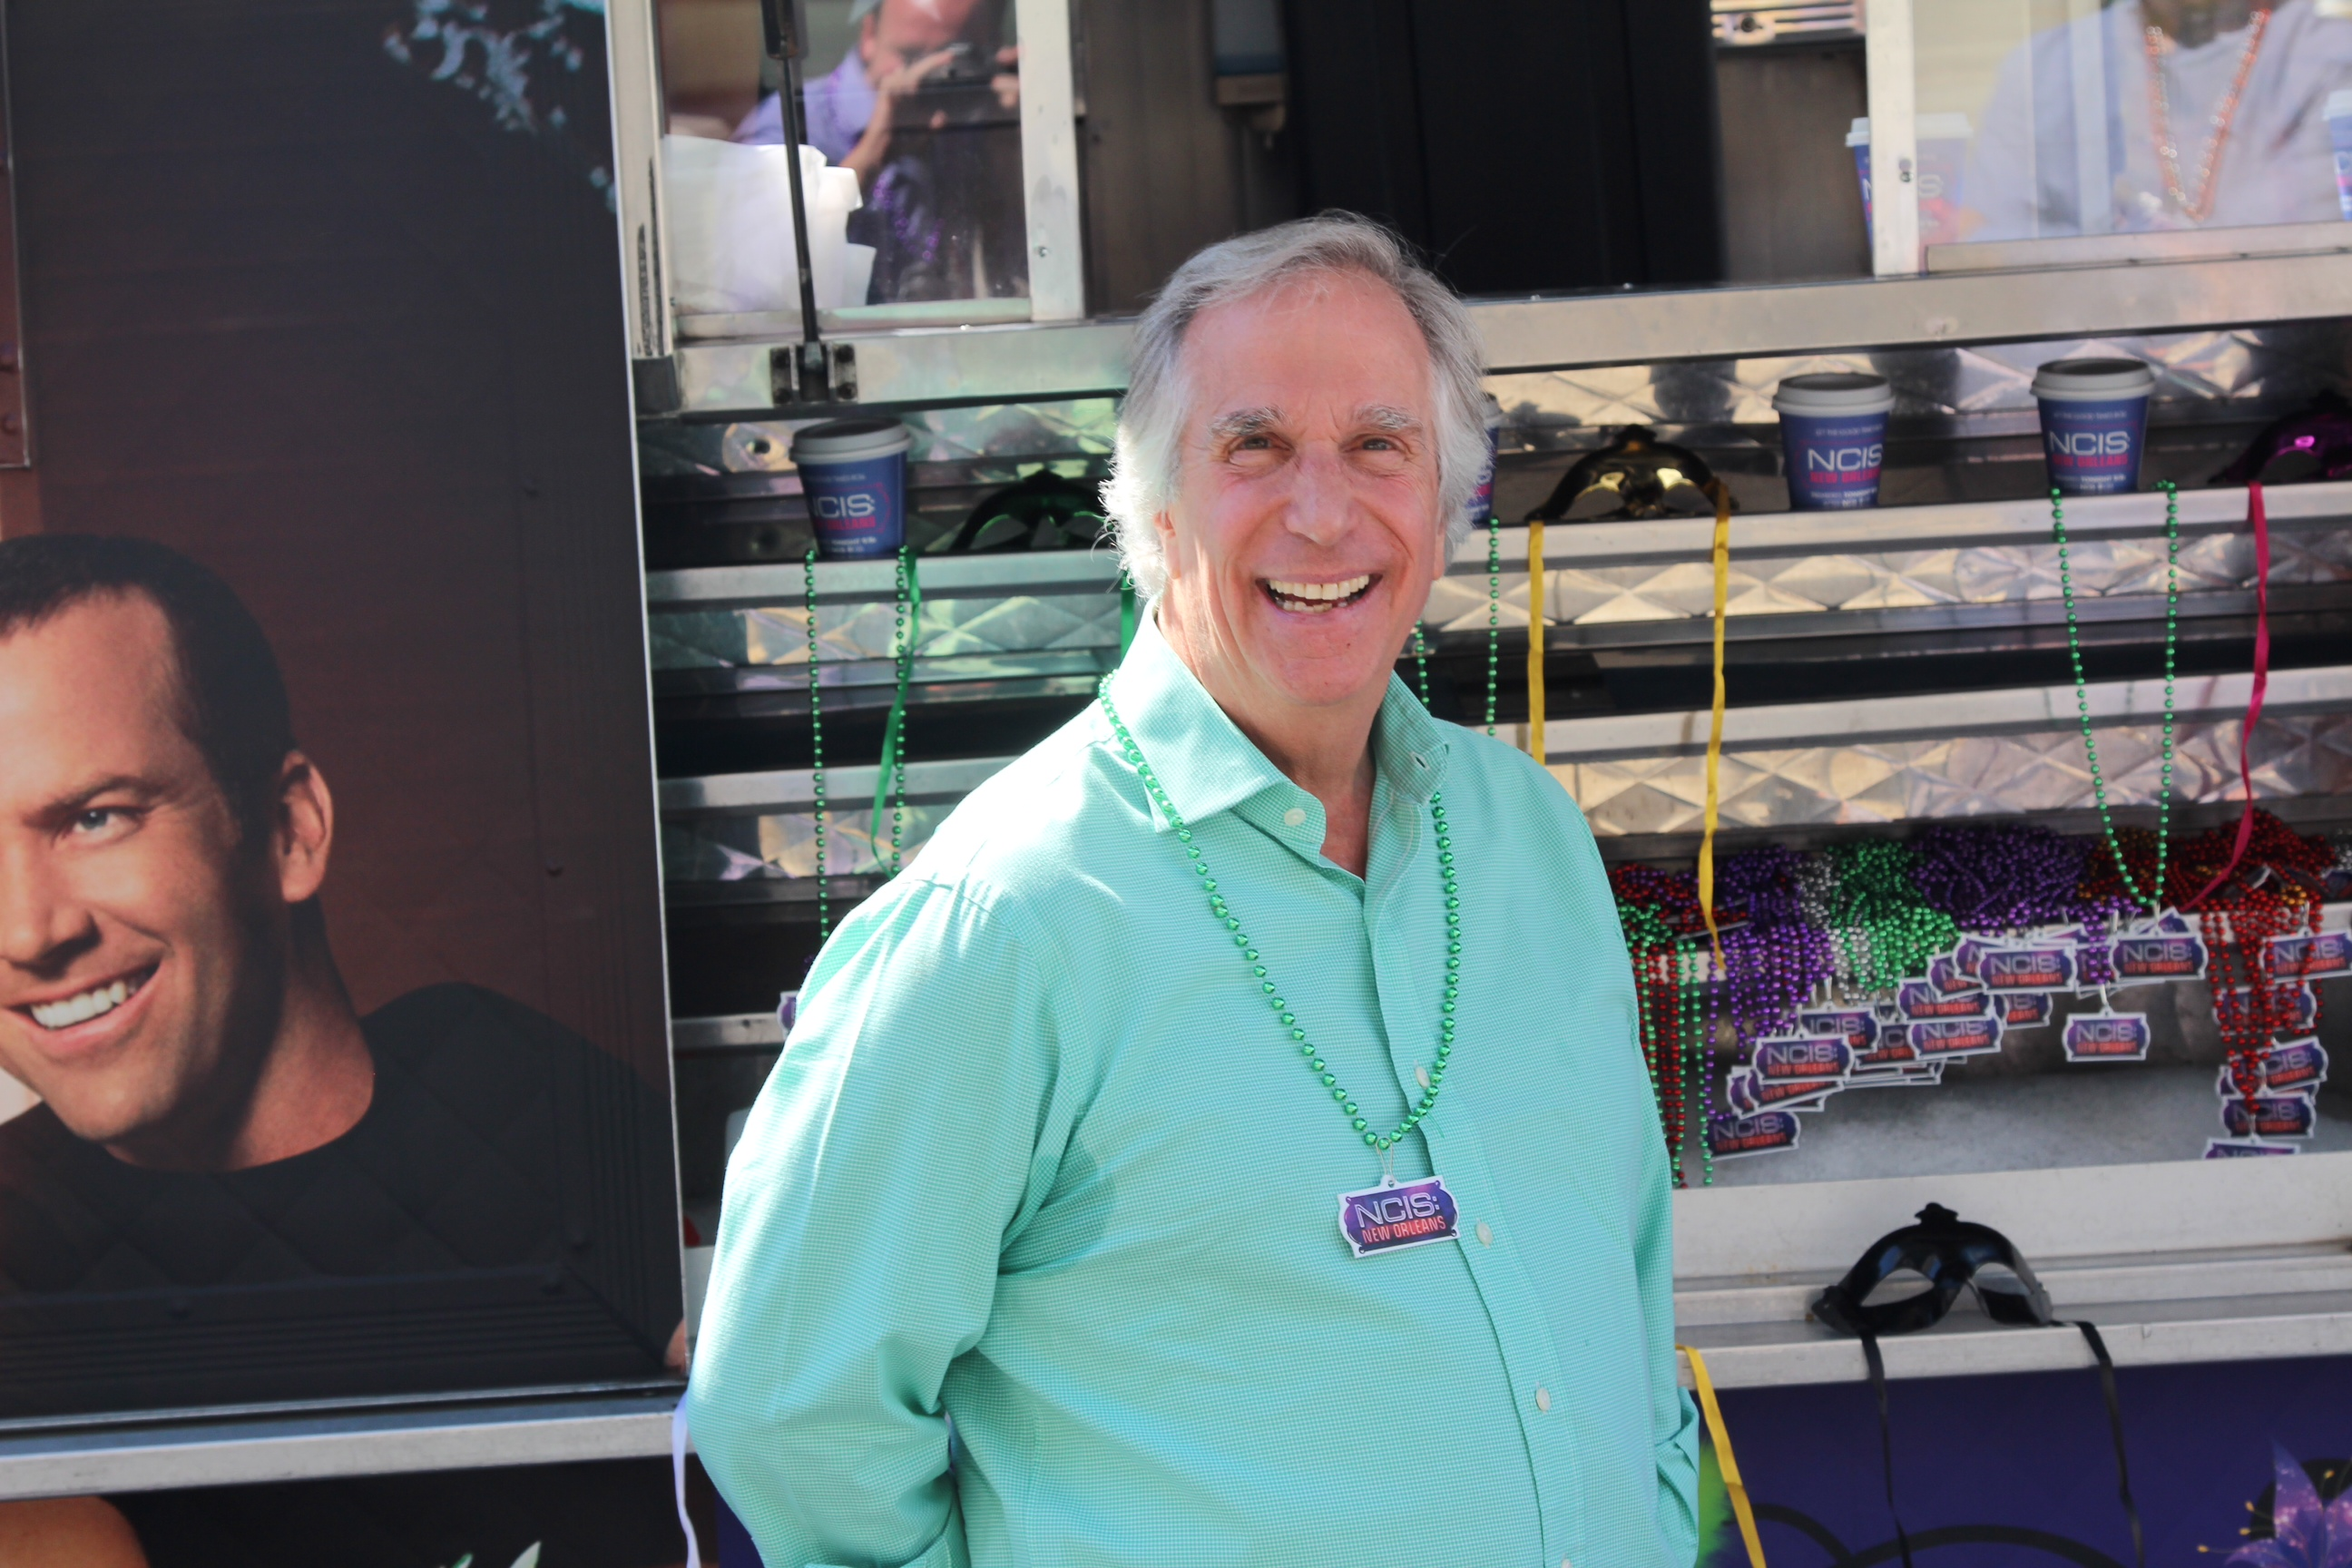 Henry Winkler stops by the NCIS New Orleans Beignet Truck!